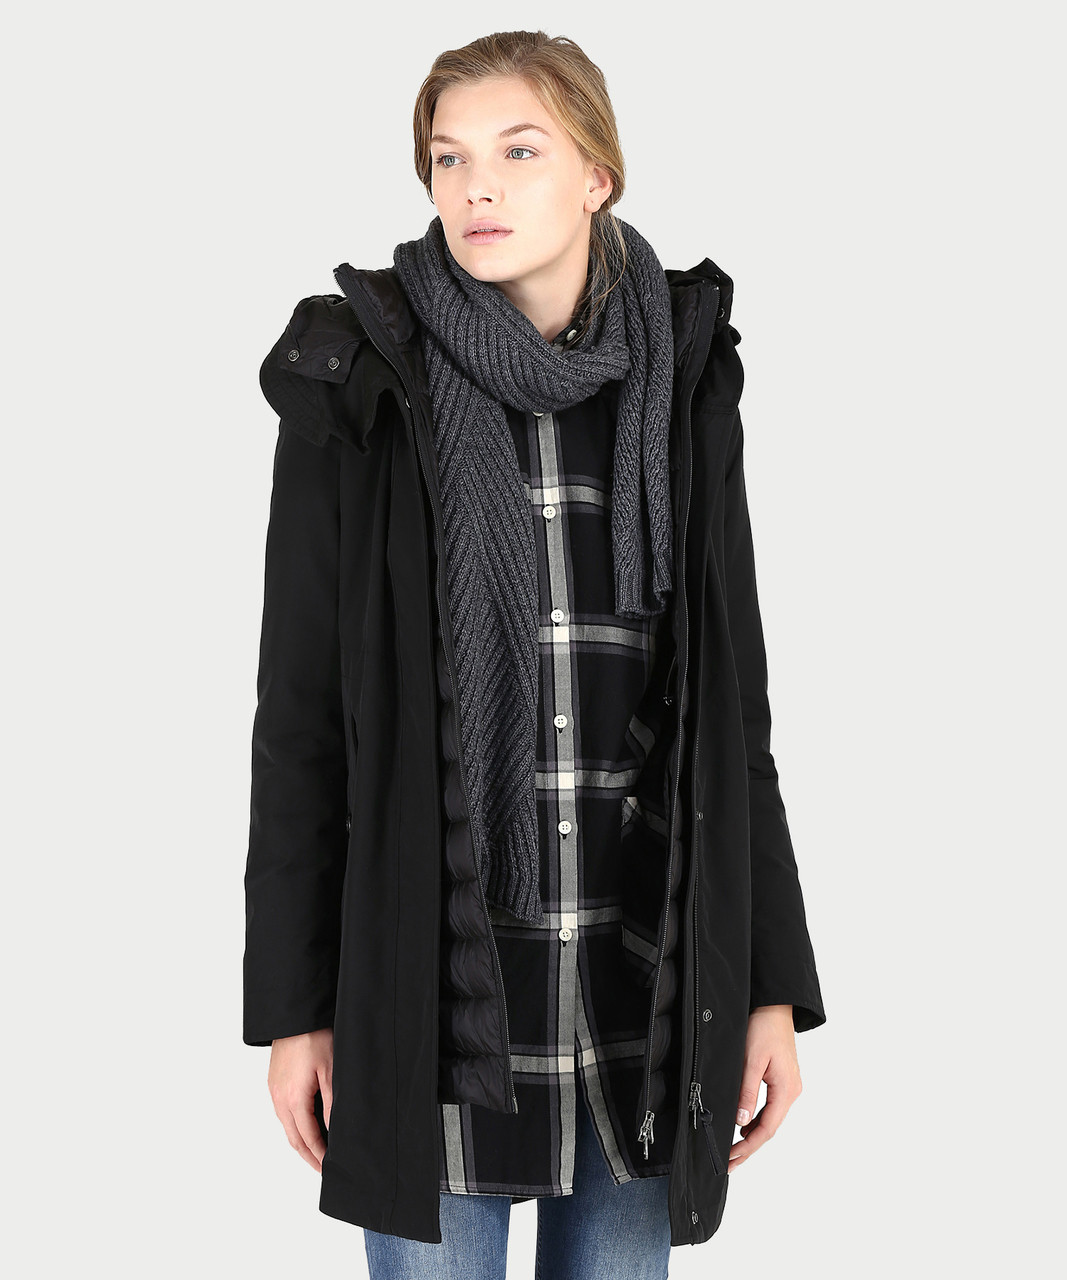 010027c7d60 Women s Long Military Parka - John Rich   Bros. - Woolrich